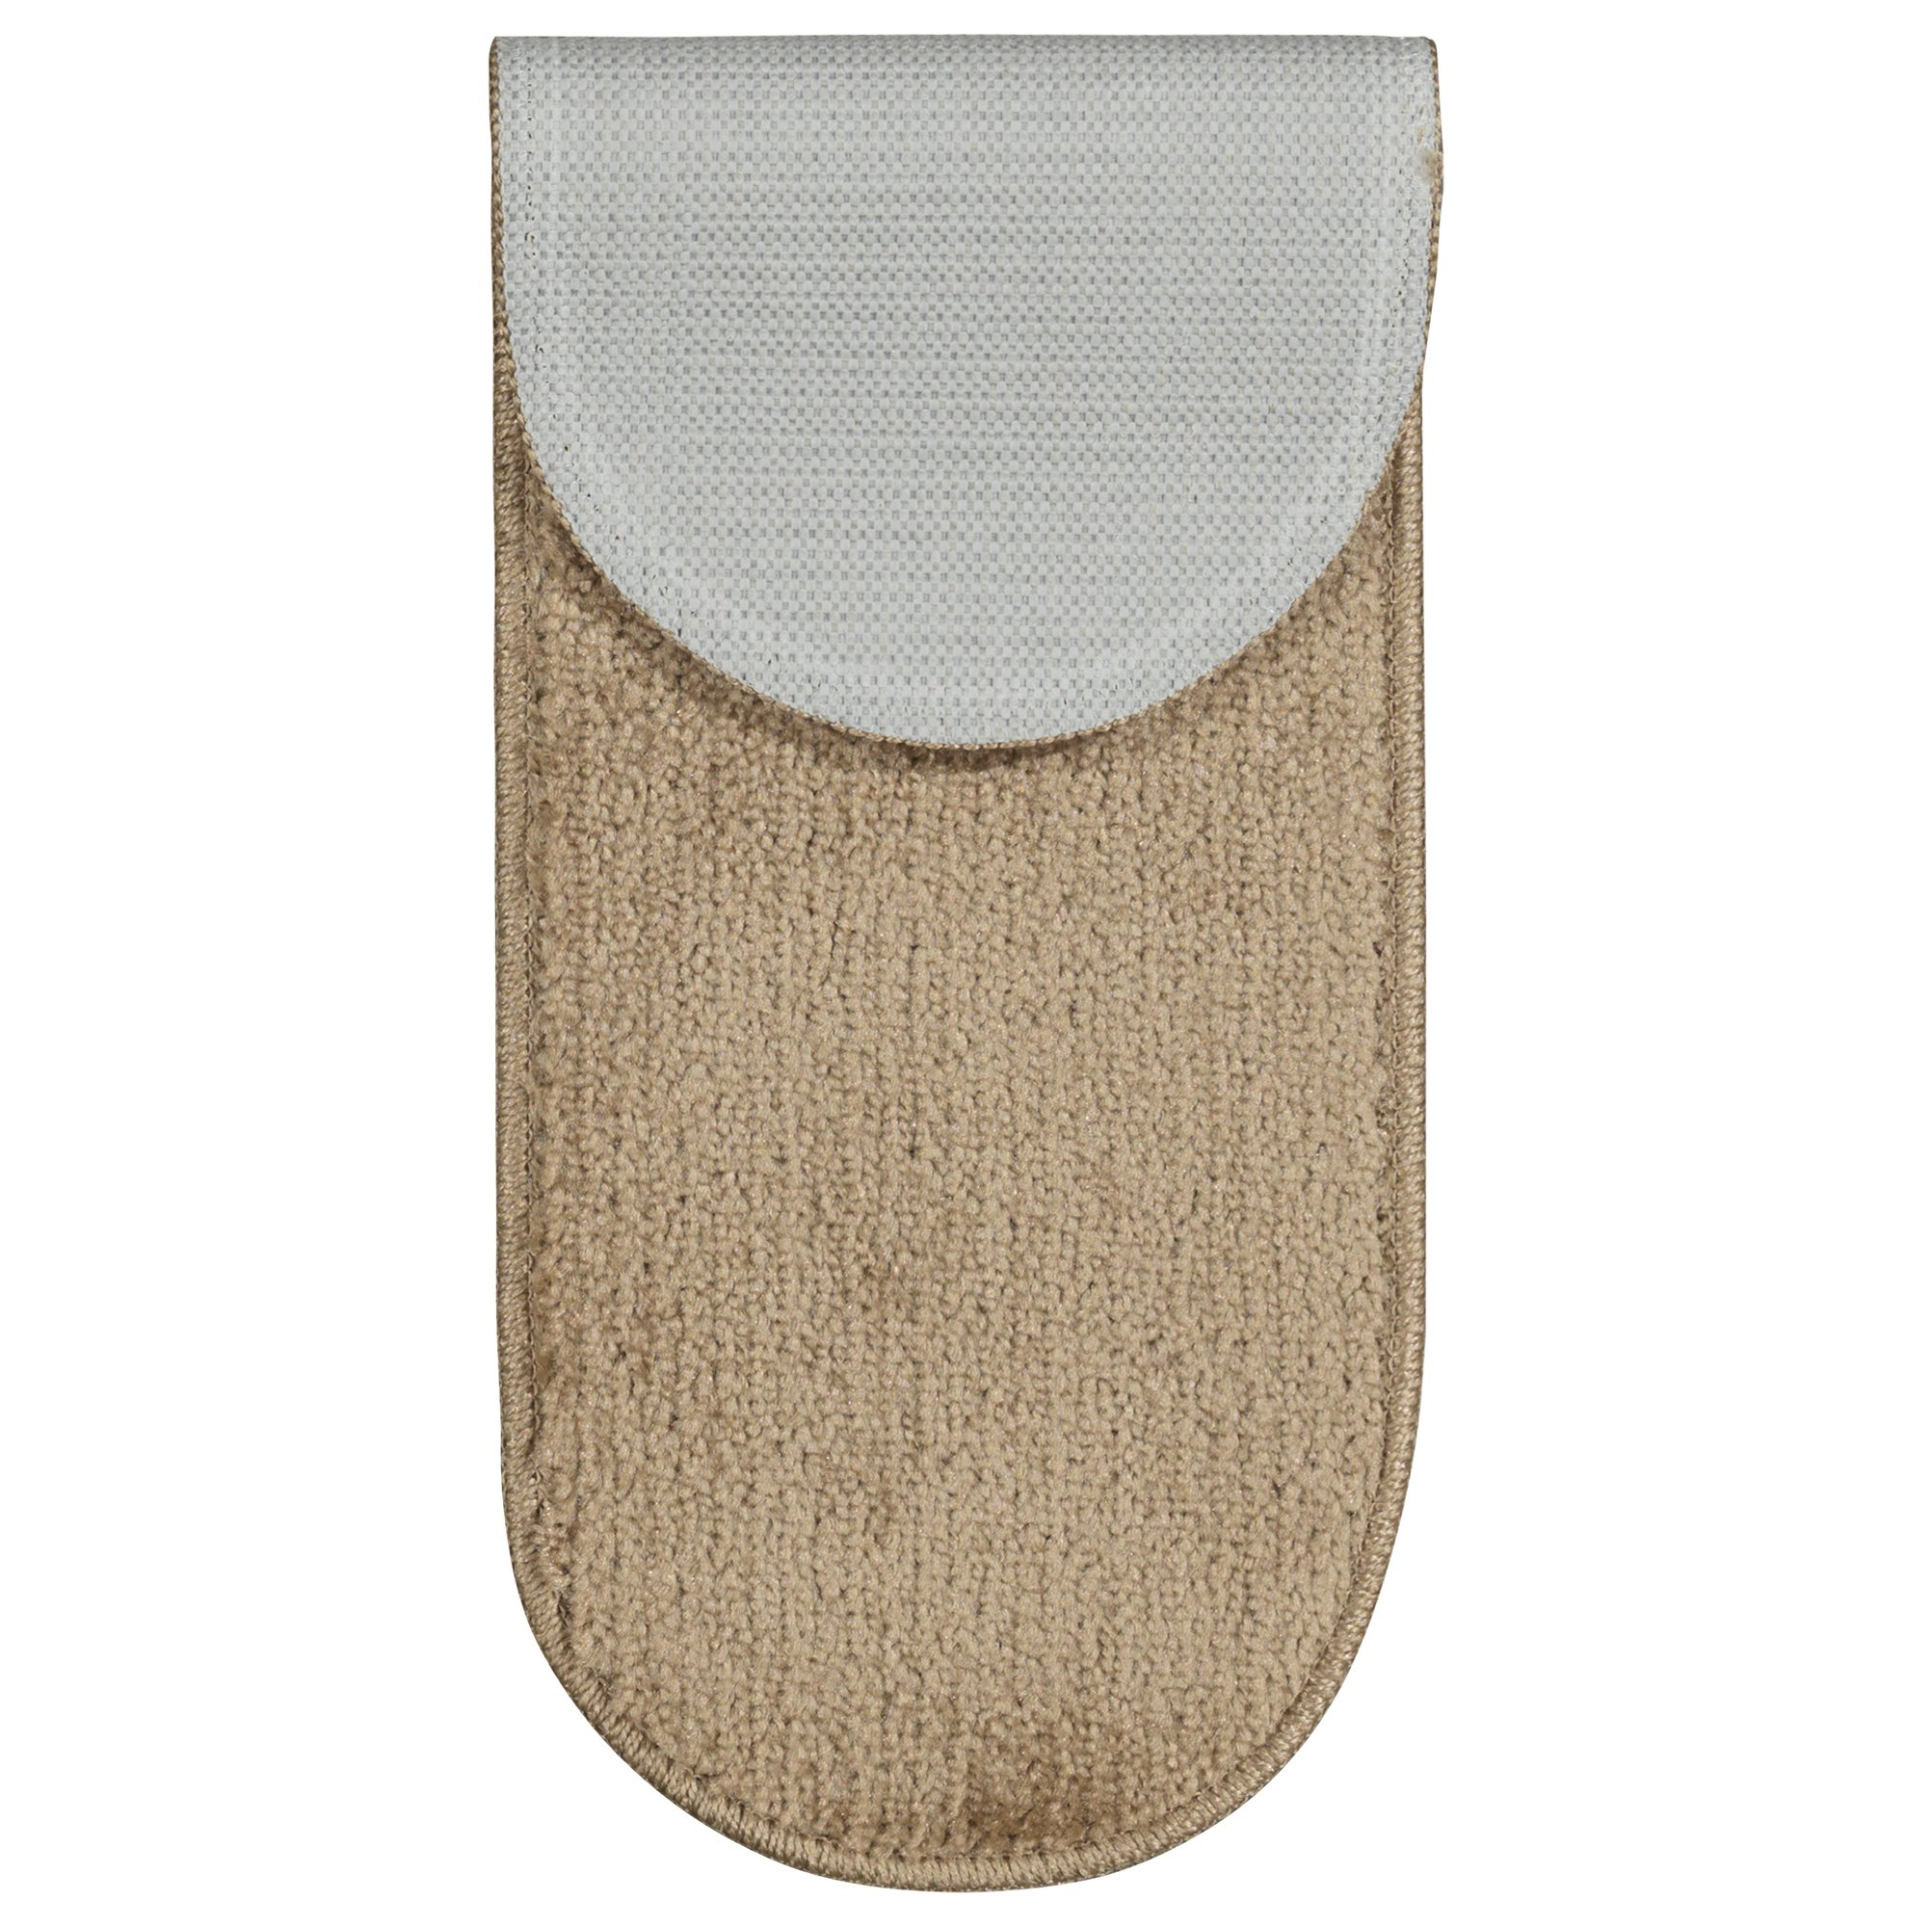 Ottomanson Softy Collection Stair Tread, 9'' X 26'' Oval, Beige, 14 Pack by Ottomanson (Image #3)